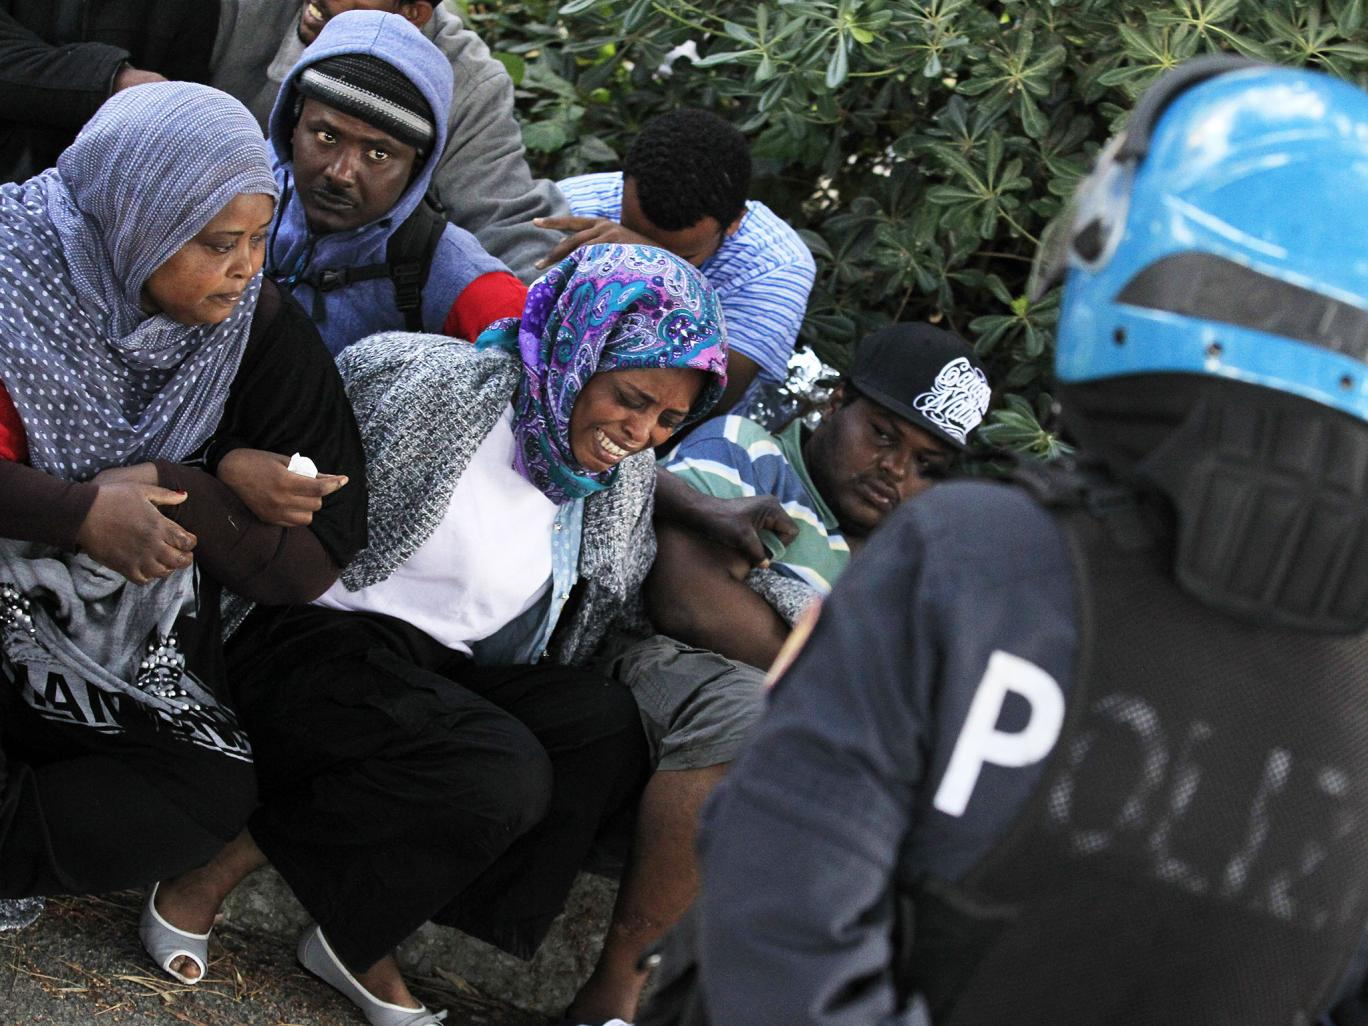 migrants stranded -italy france border June Reuters